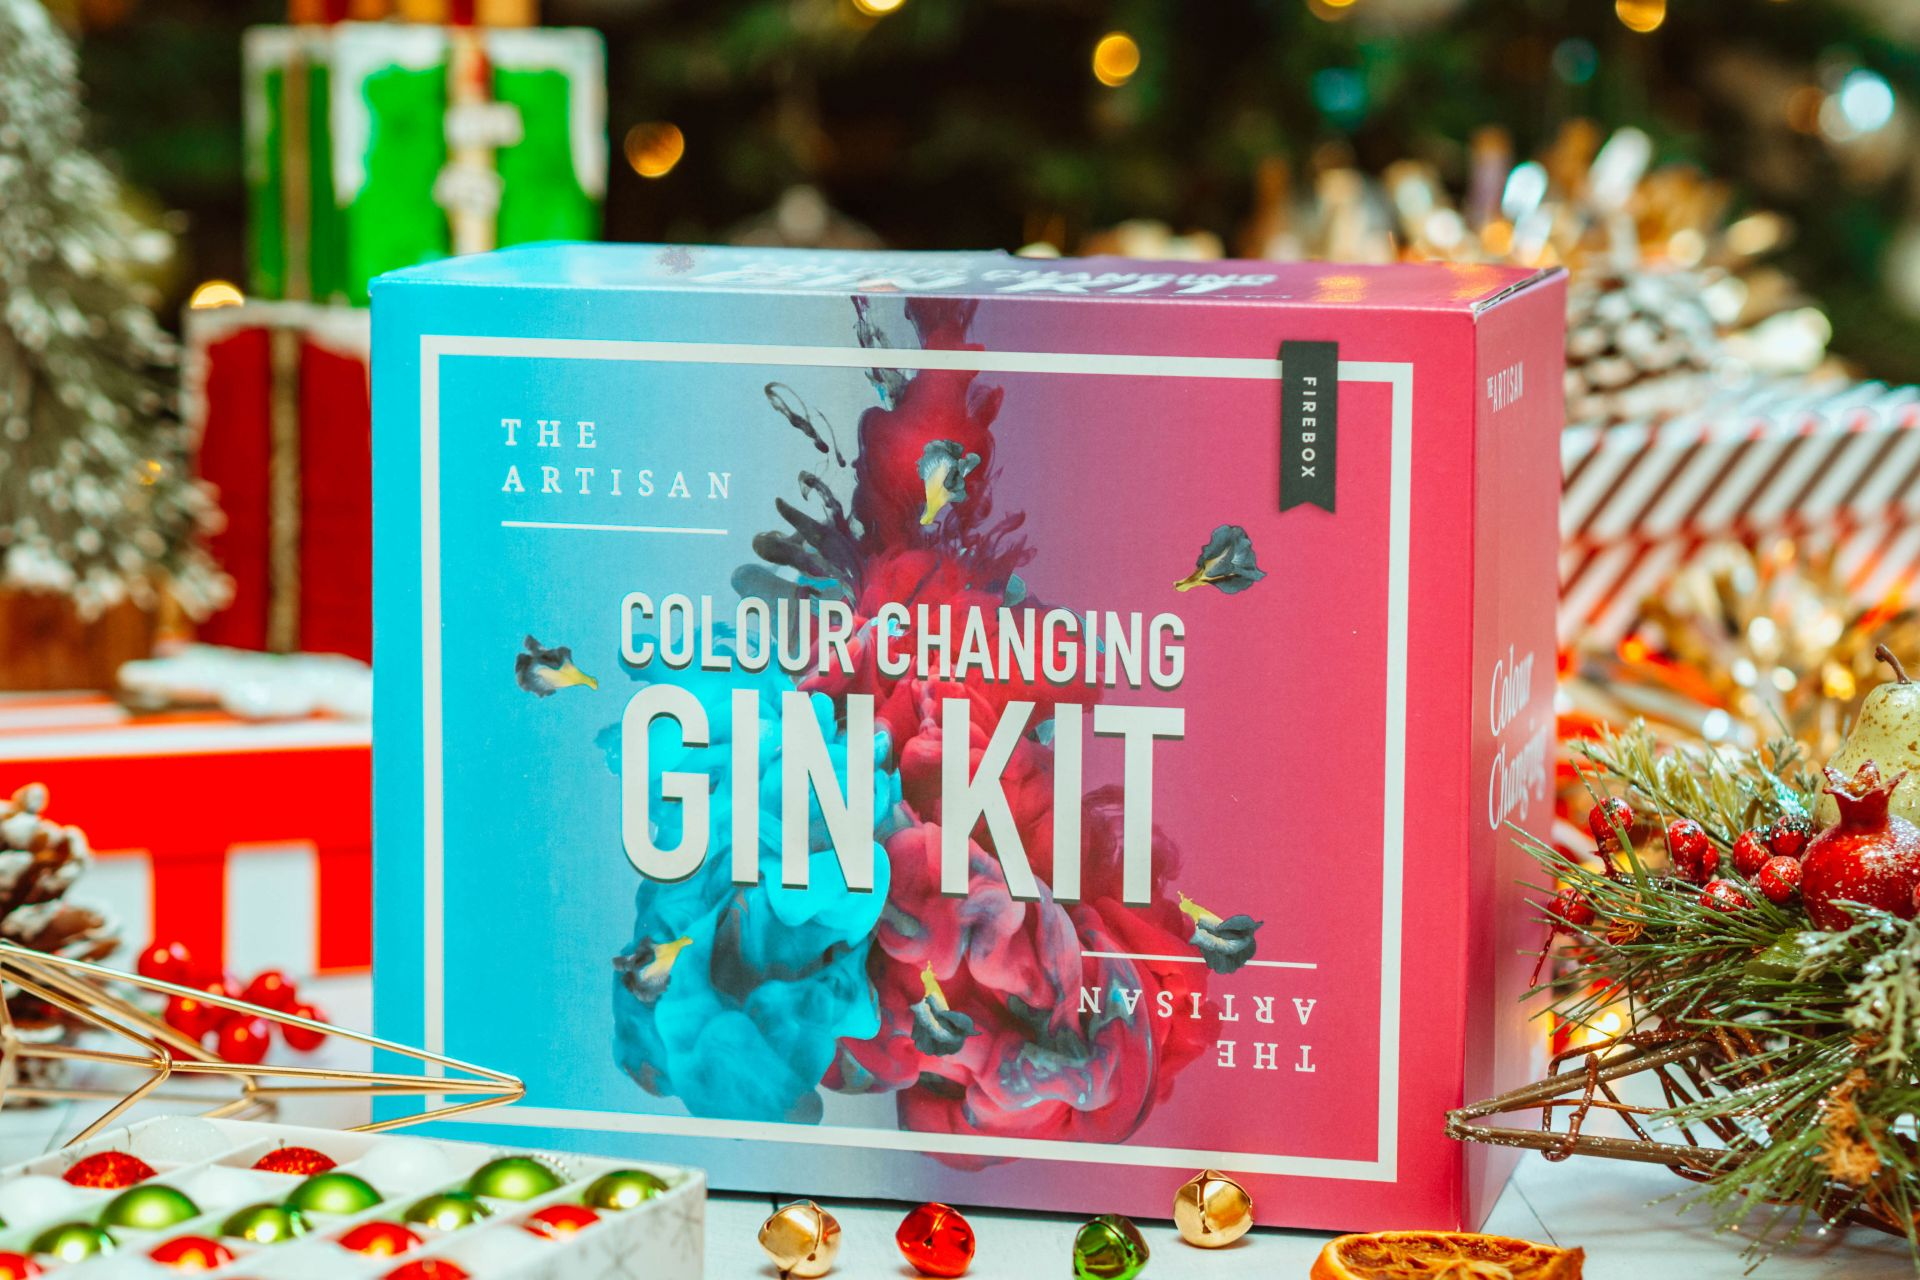 The Artisan Colour Changing Gin Kit - Gin gifts